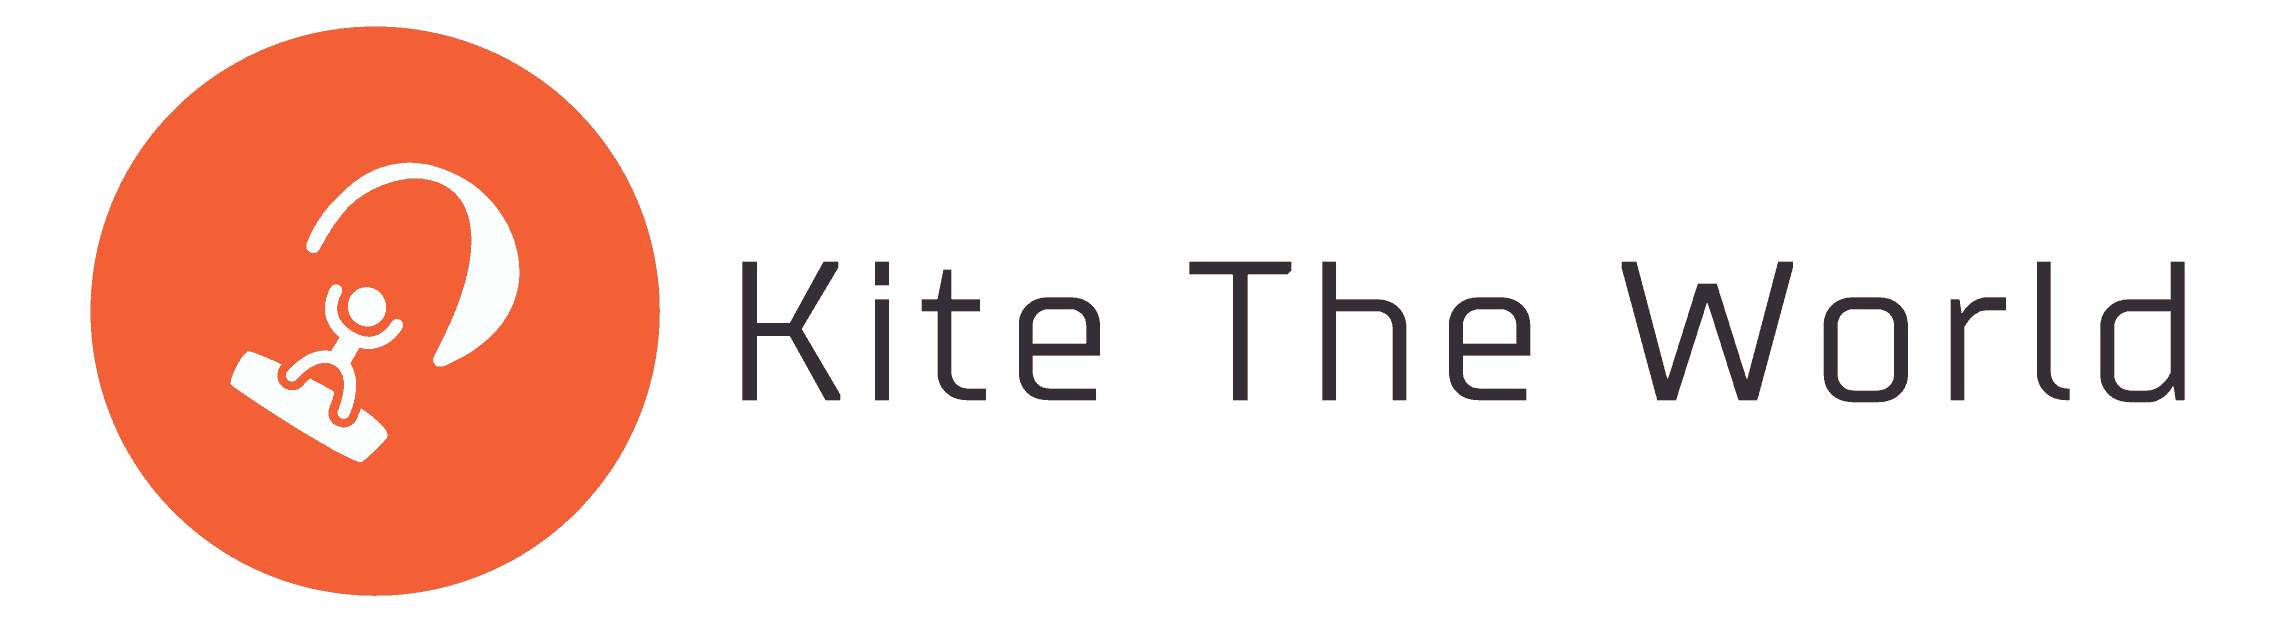 Kite the World